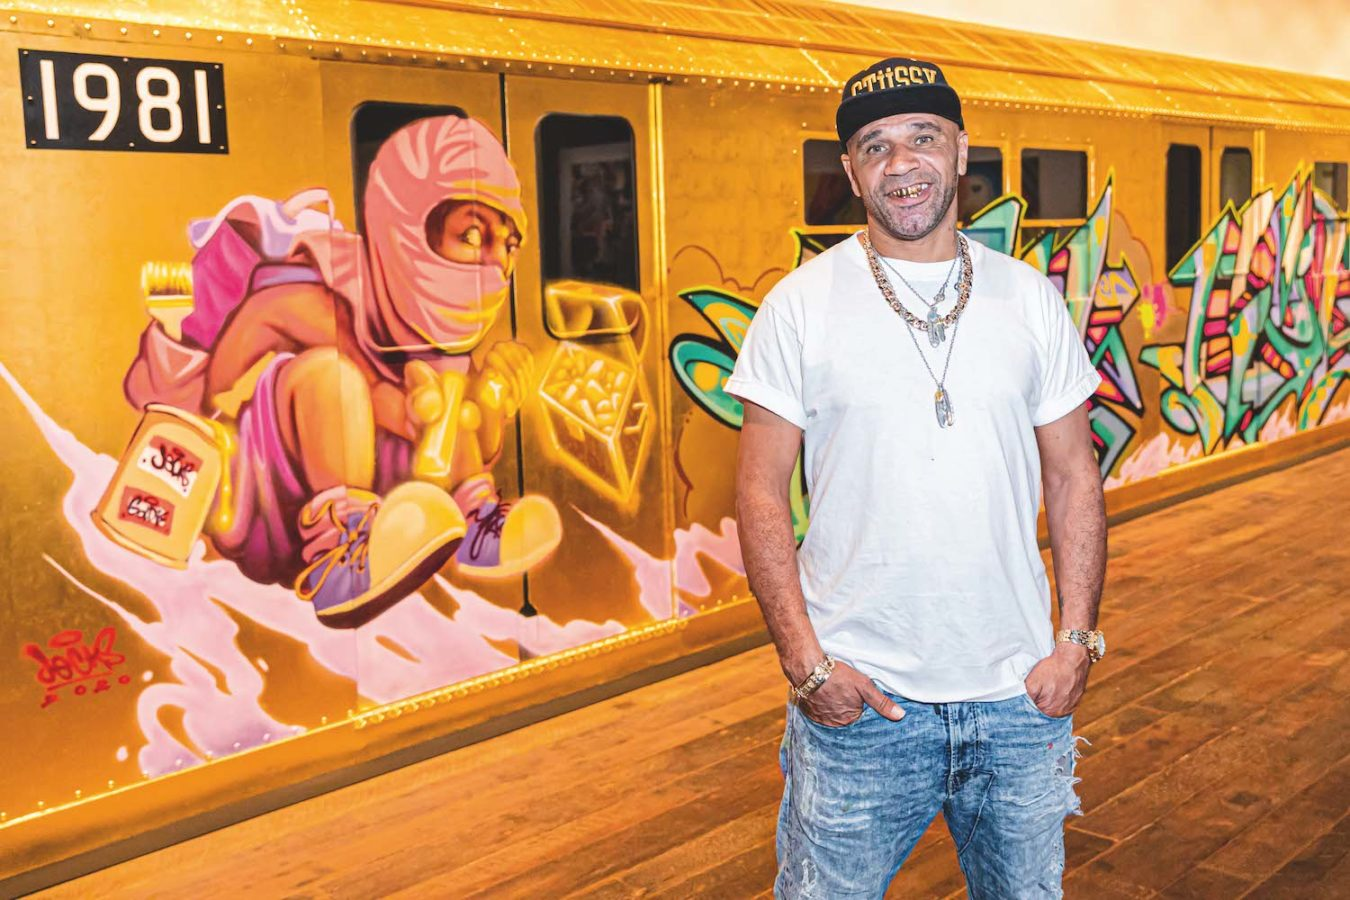 DJ, Musician, Actor, and Artist Goldie Talks Rebel Art, and His Newly Opened Aurum Gallery